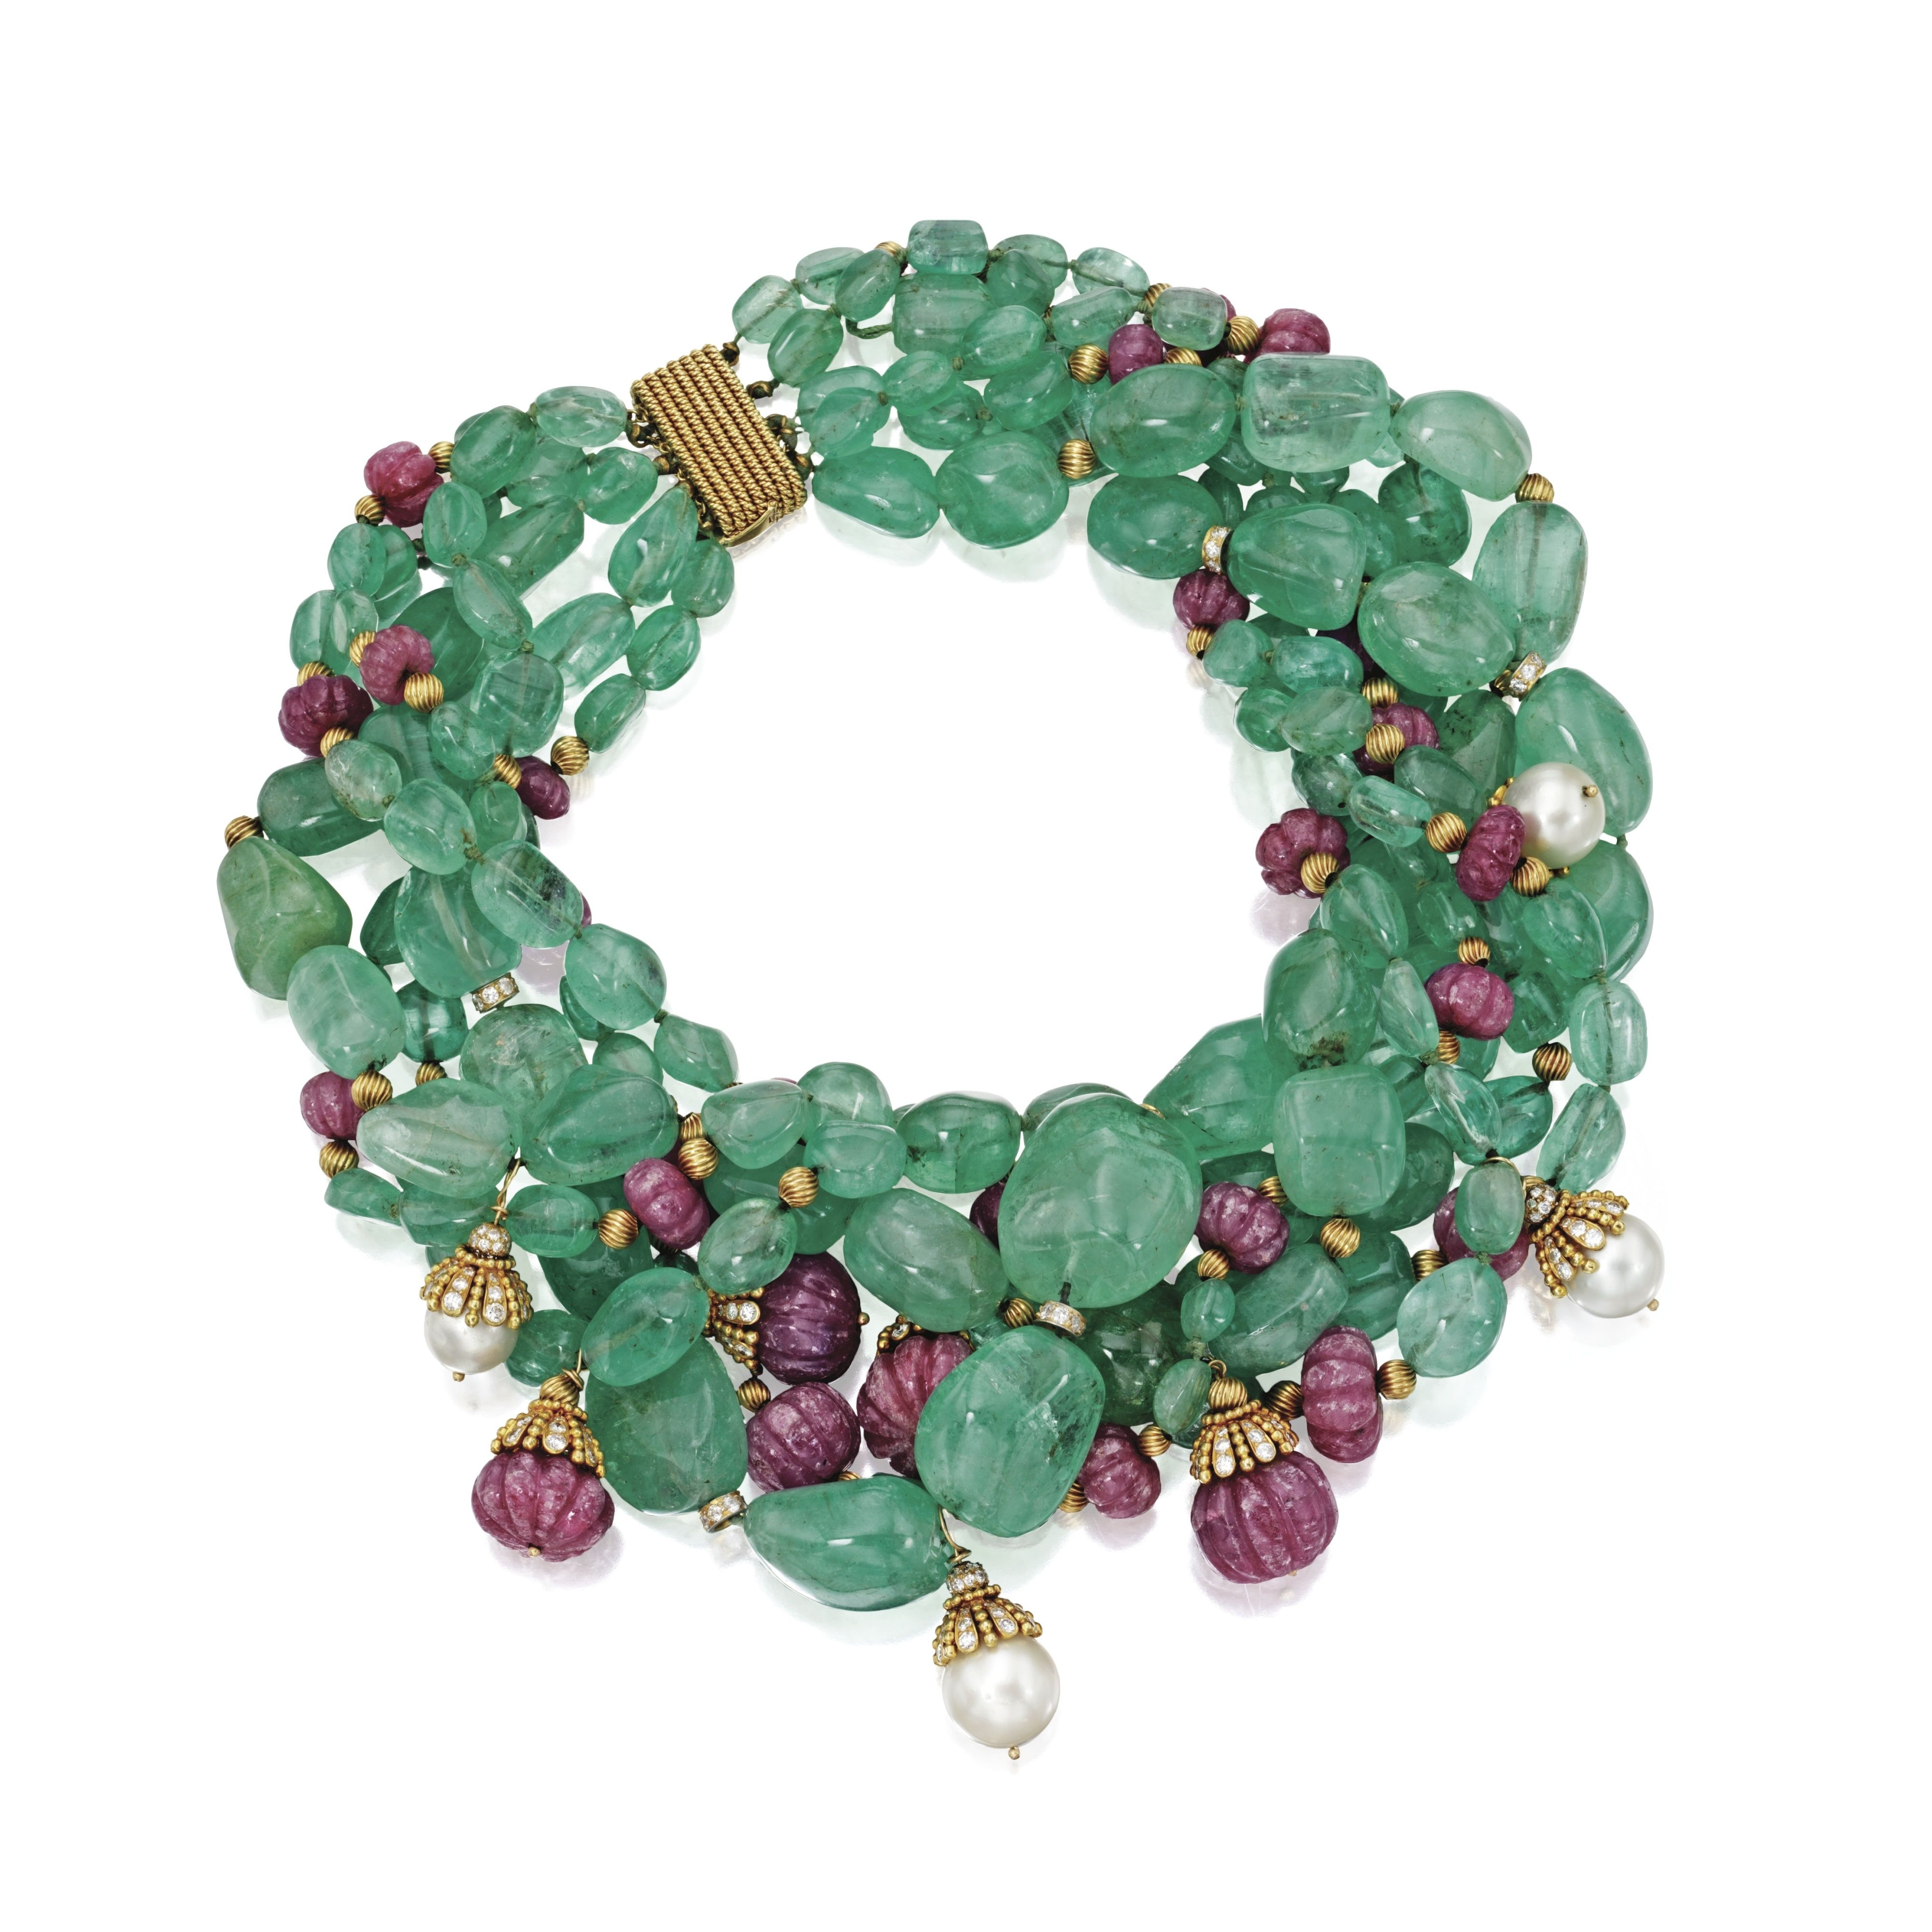 18 Karat Gold, Emerald, Ruby, Cultured Pearl And Diamond Torsade Necklace,  David